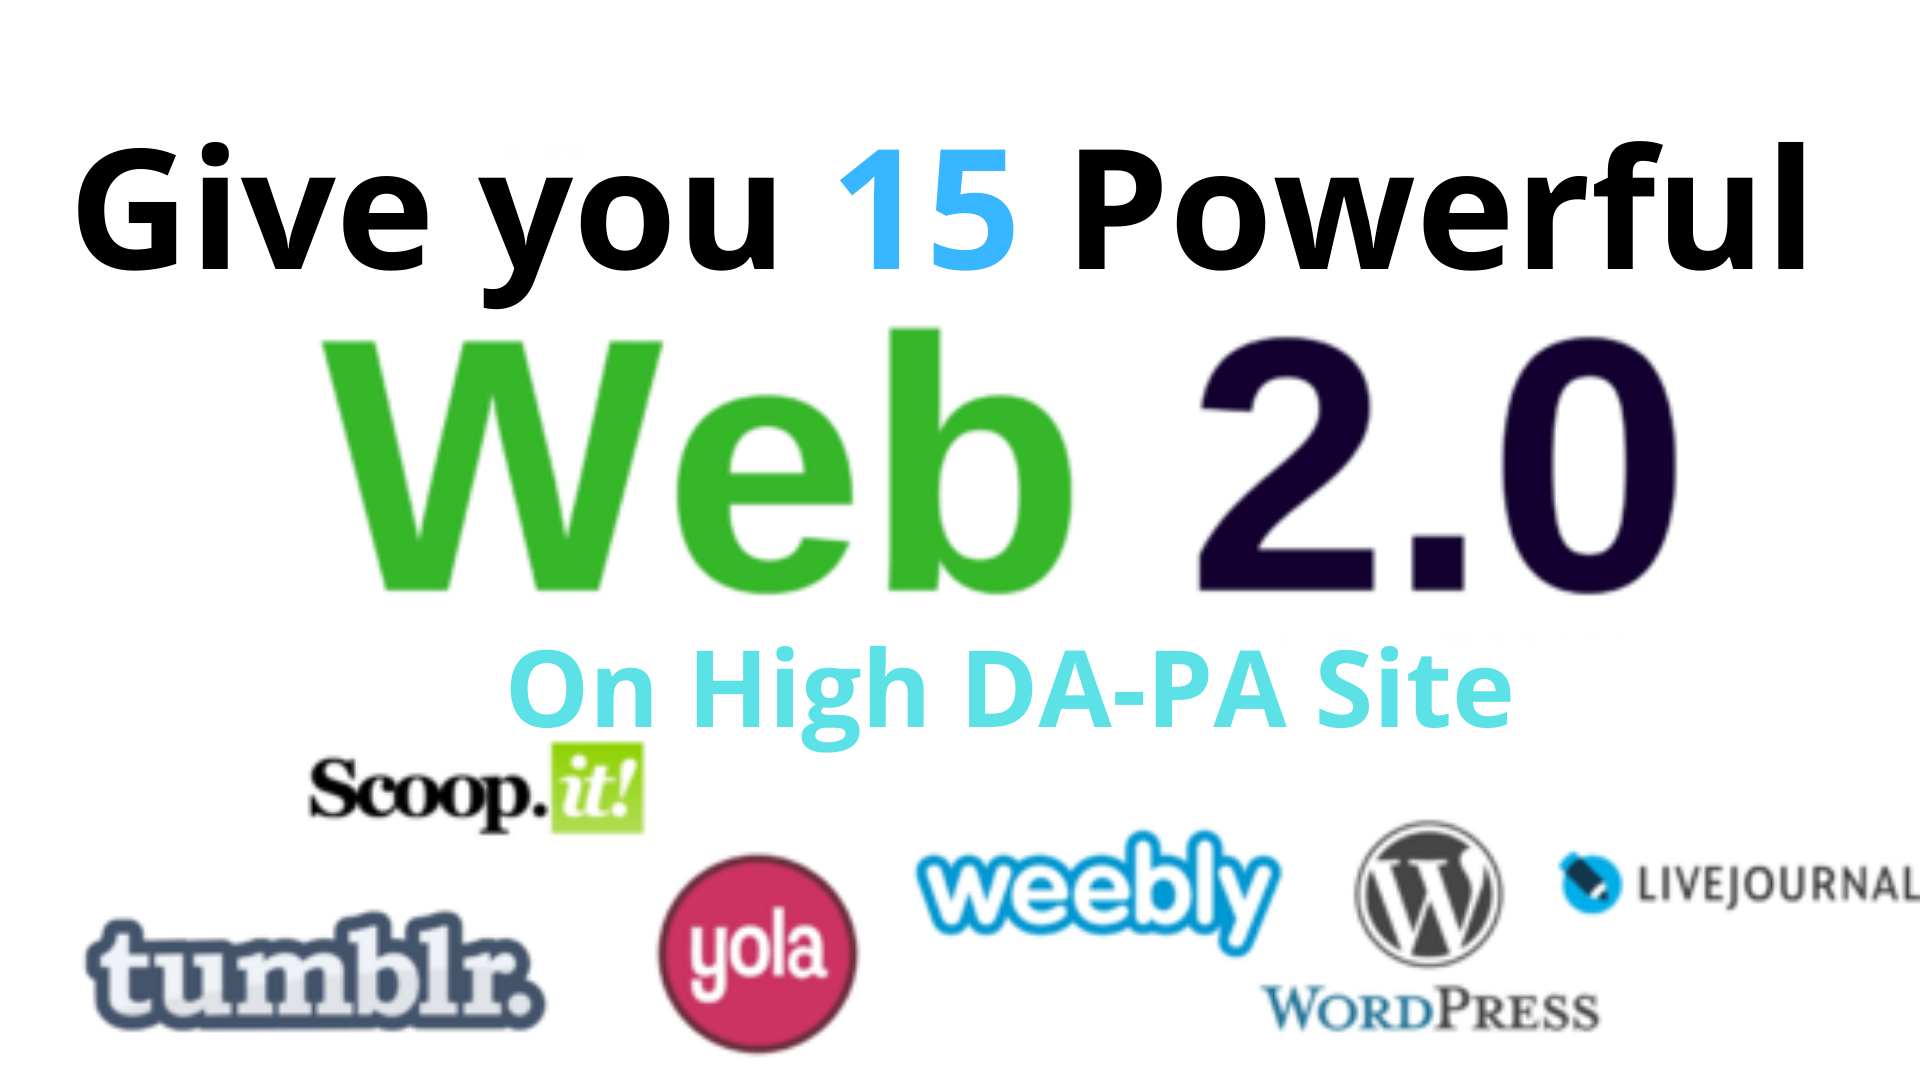 Give you 15 WEB2.0 to boost your Search Engine Rank